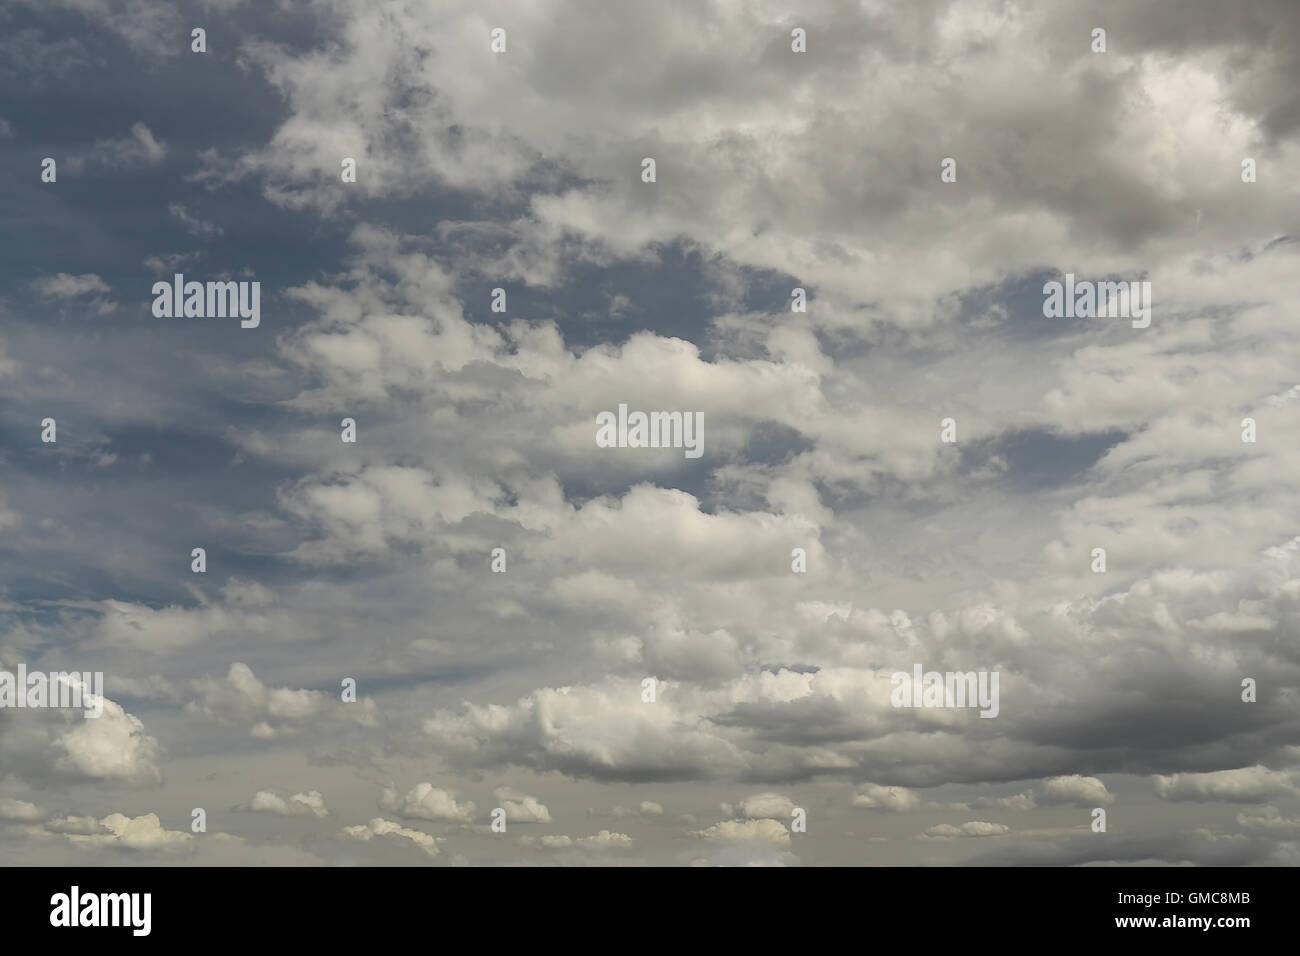 Partly cloudy variance - Stock Image